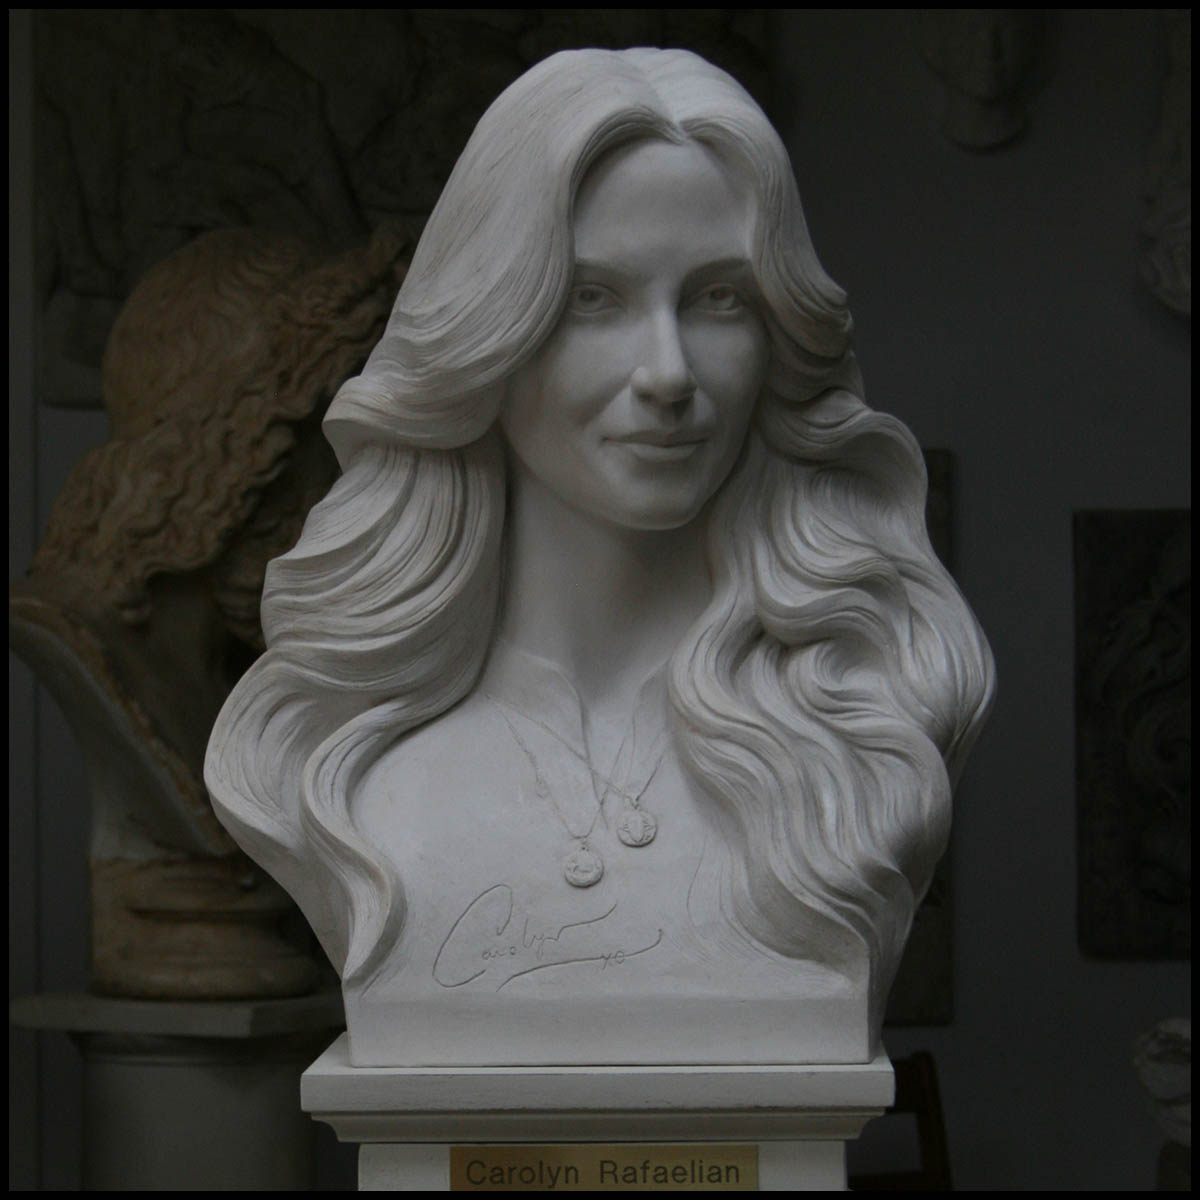 photo of white-colored sculpture bust of Carolyn Rafaelian on white square base with small gold-colored plaque against a black background